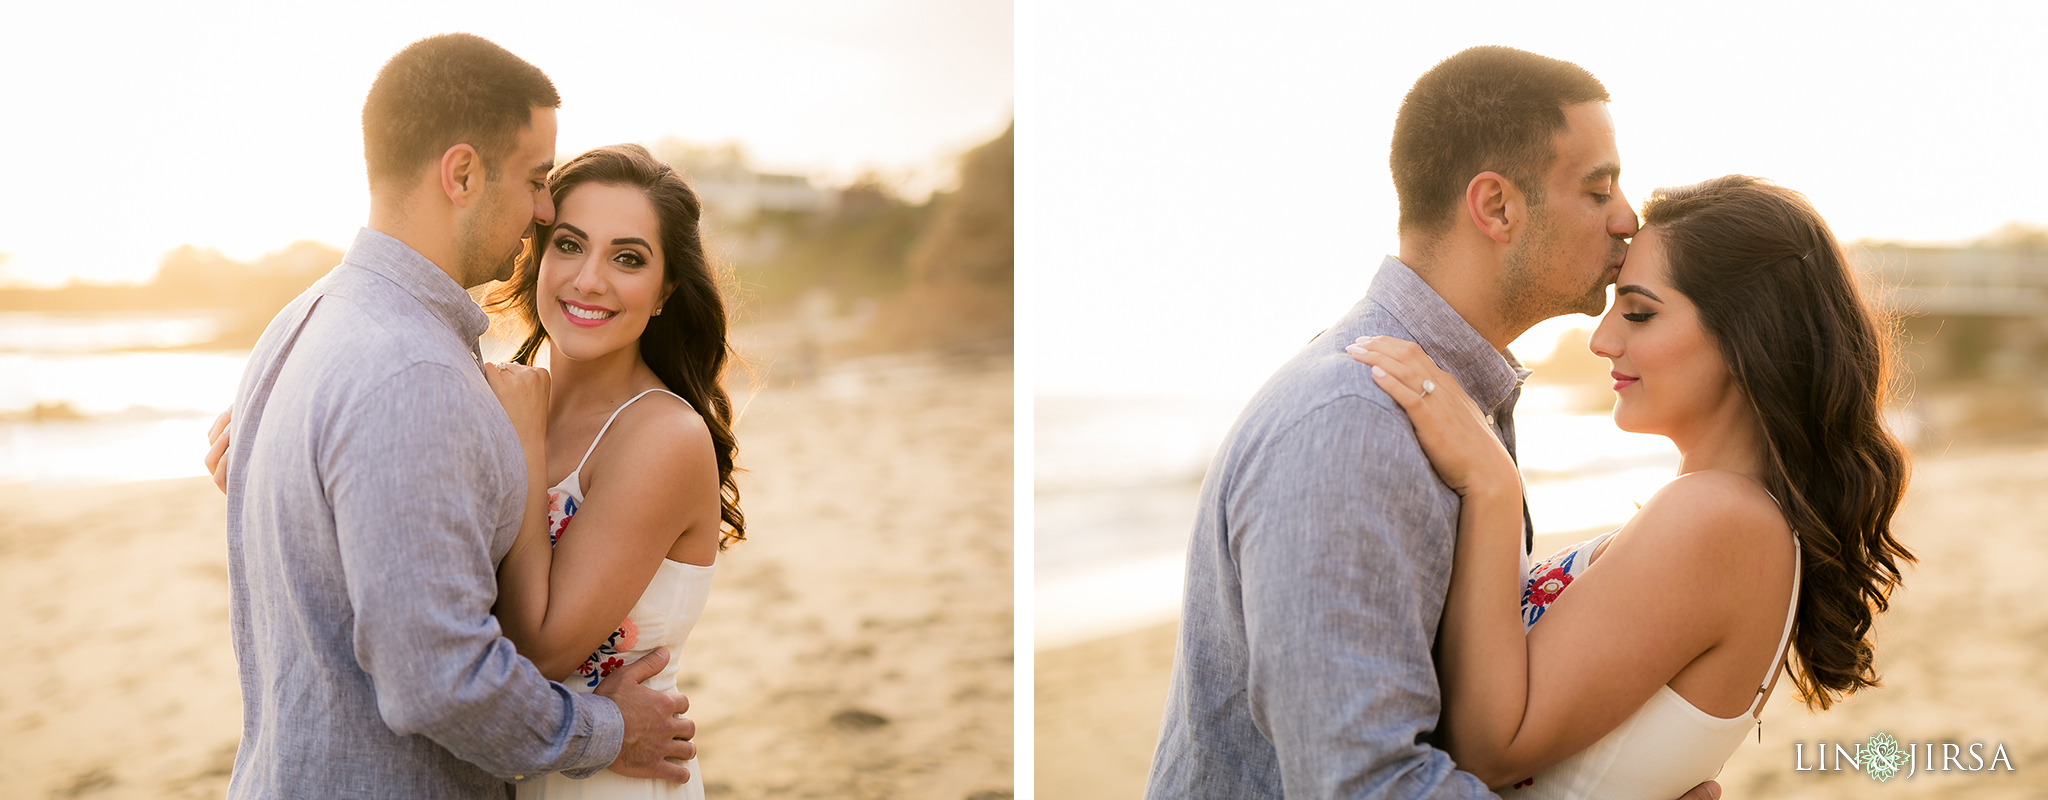 23-Orange-County-Beach-Engagement-Photography